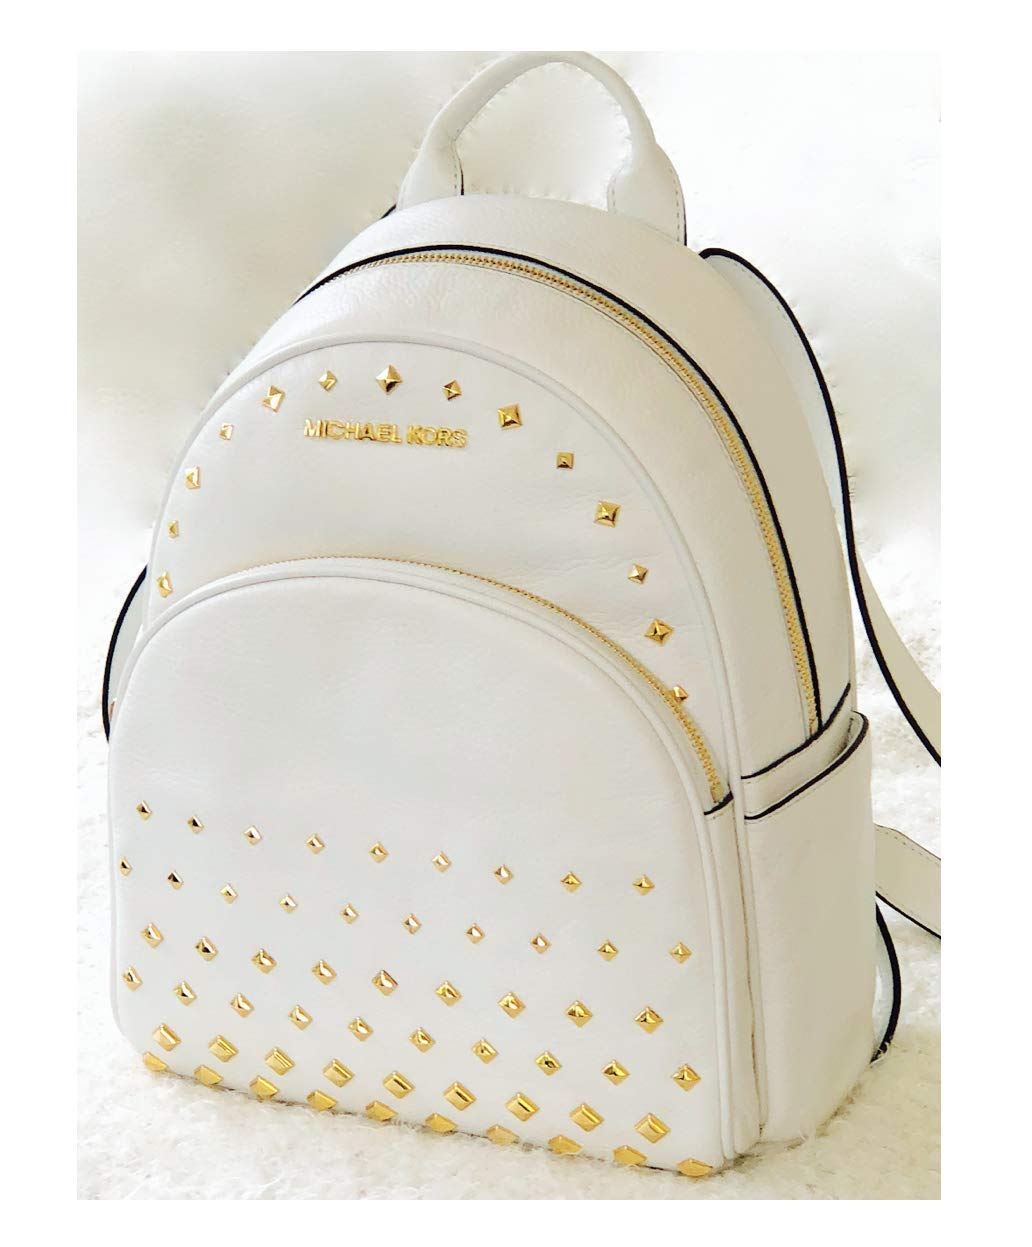 f5c3ba6d4 Galleon - Michael Kors Abbey Medium Studded Backpack Leather White Bag